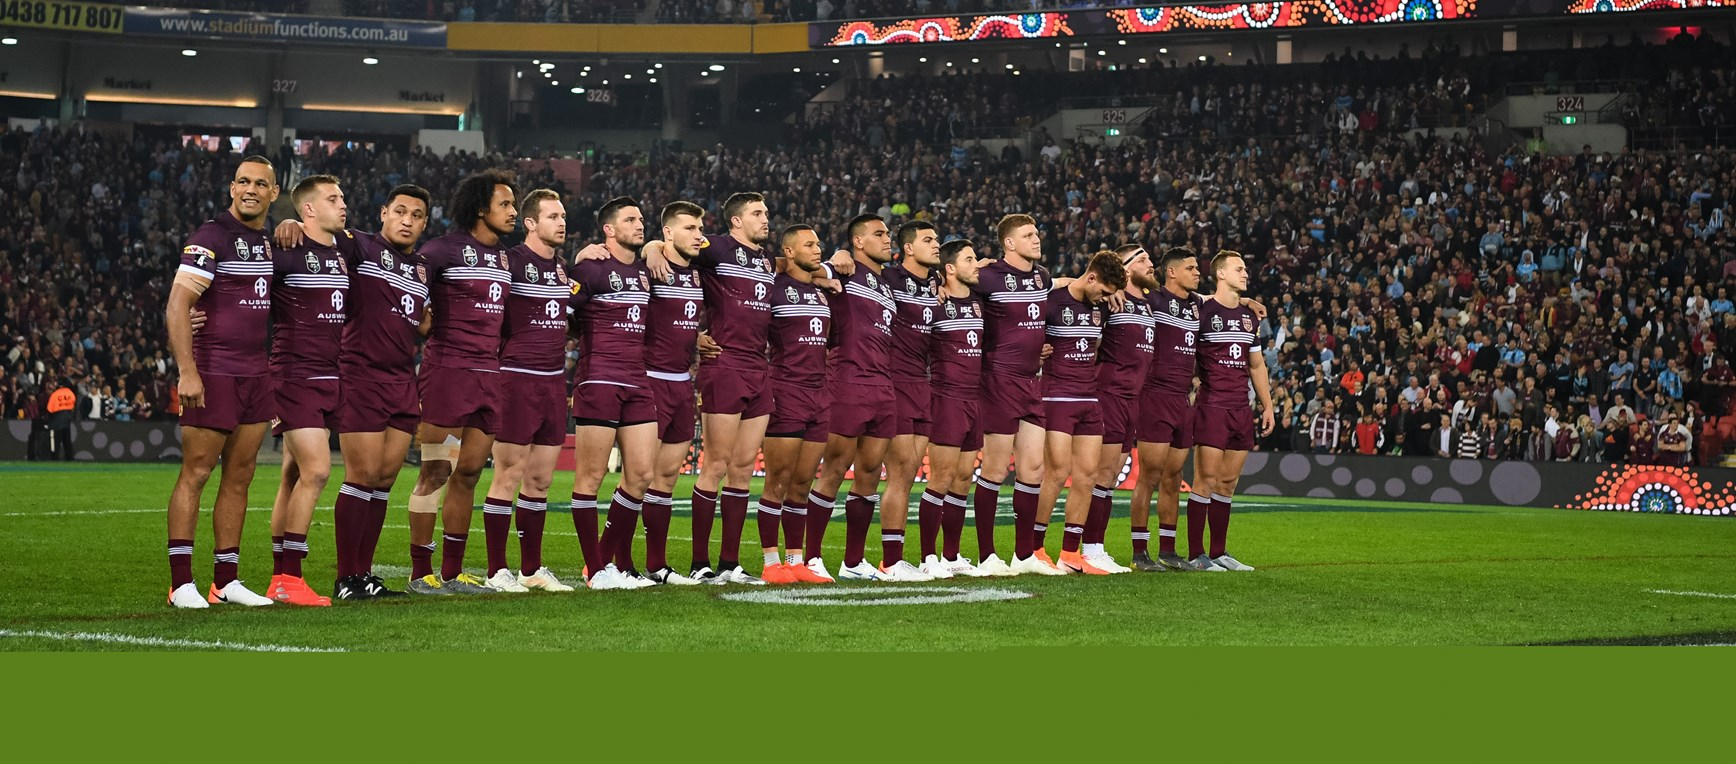 Best photos from State of Origin I